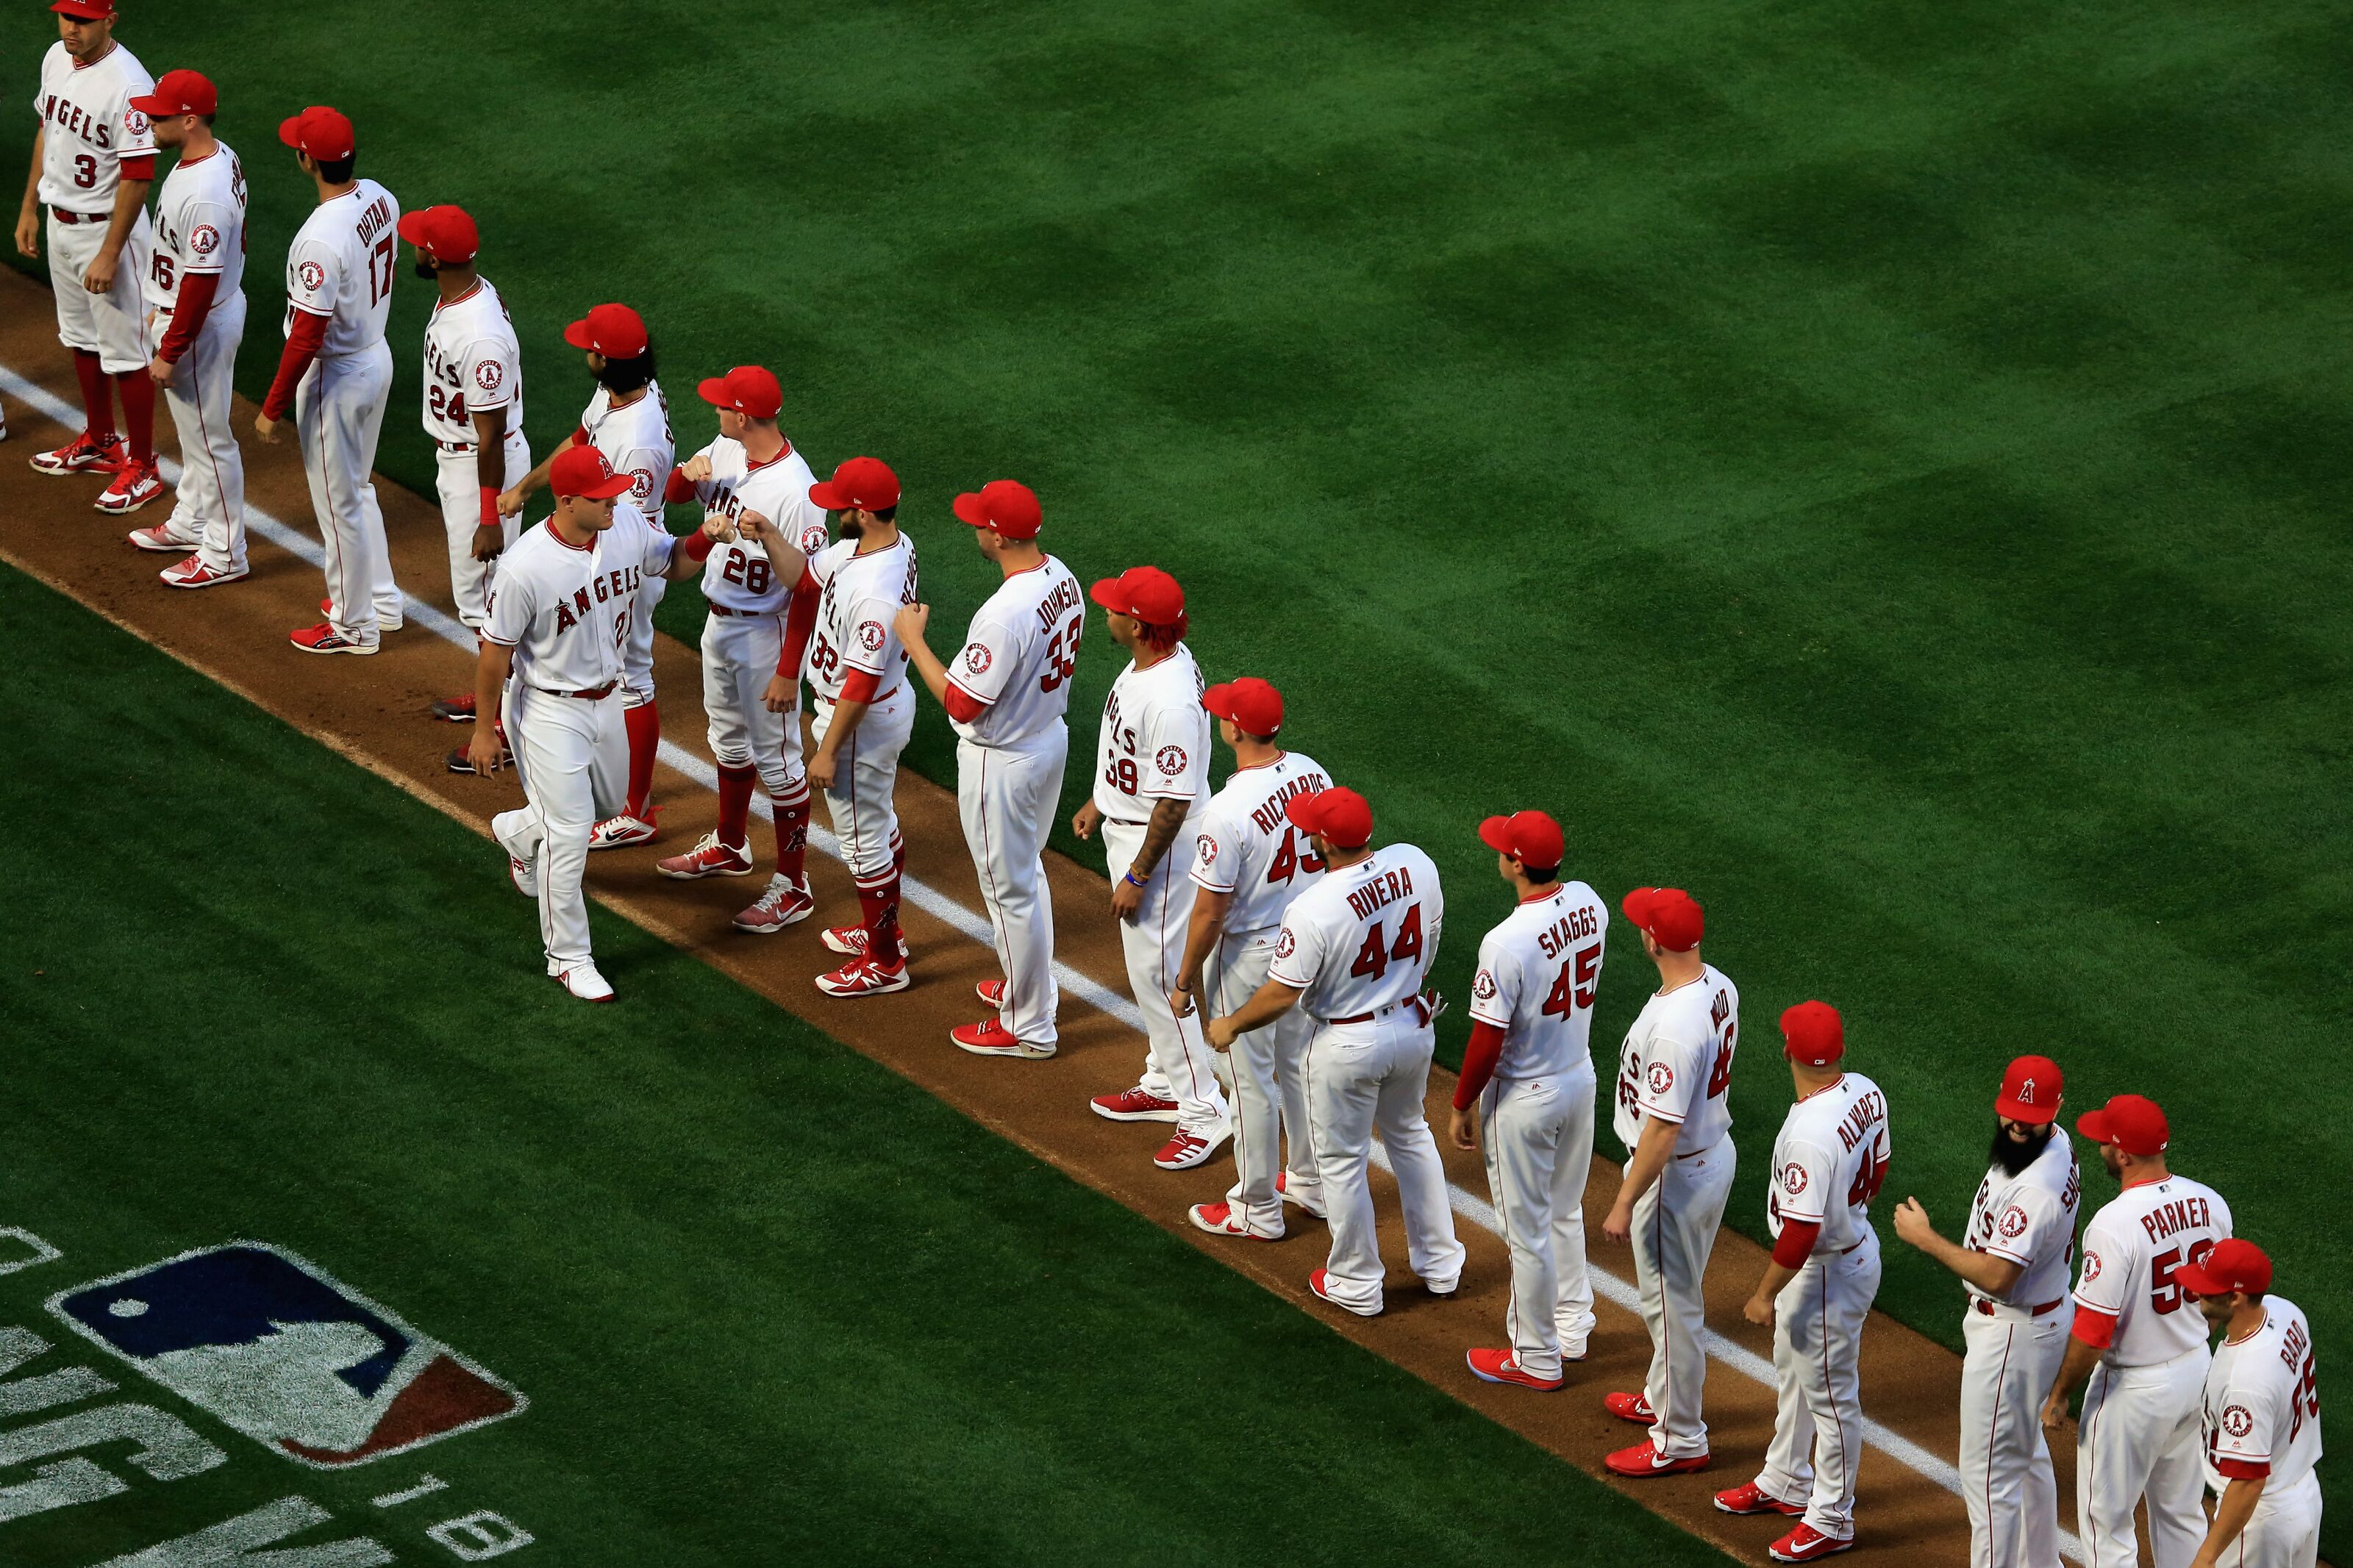 Los Angeles Angels have the biggest variance of success in 2019